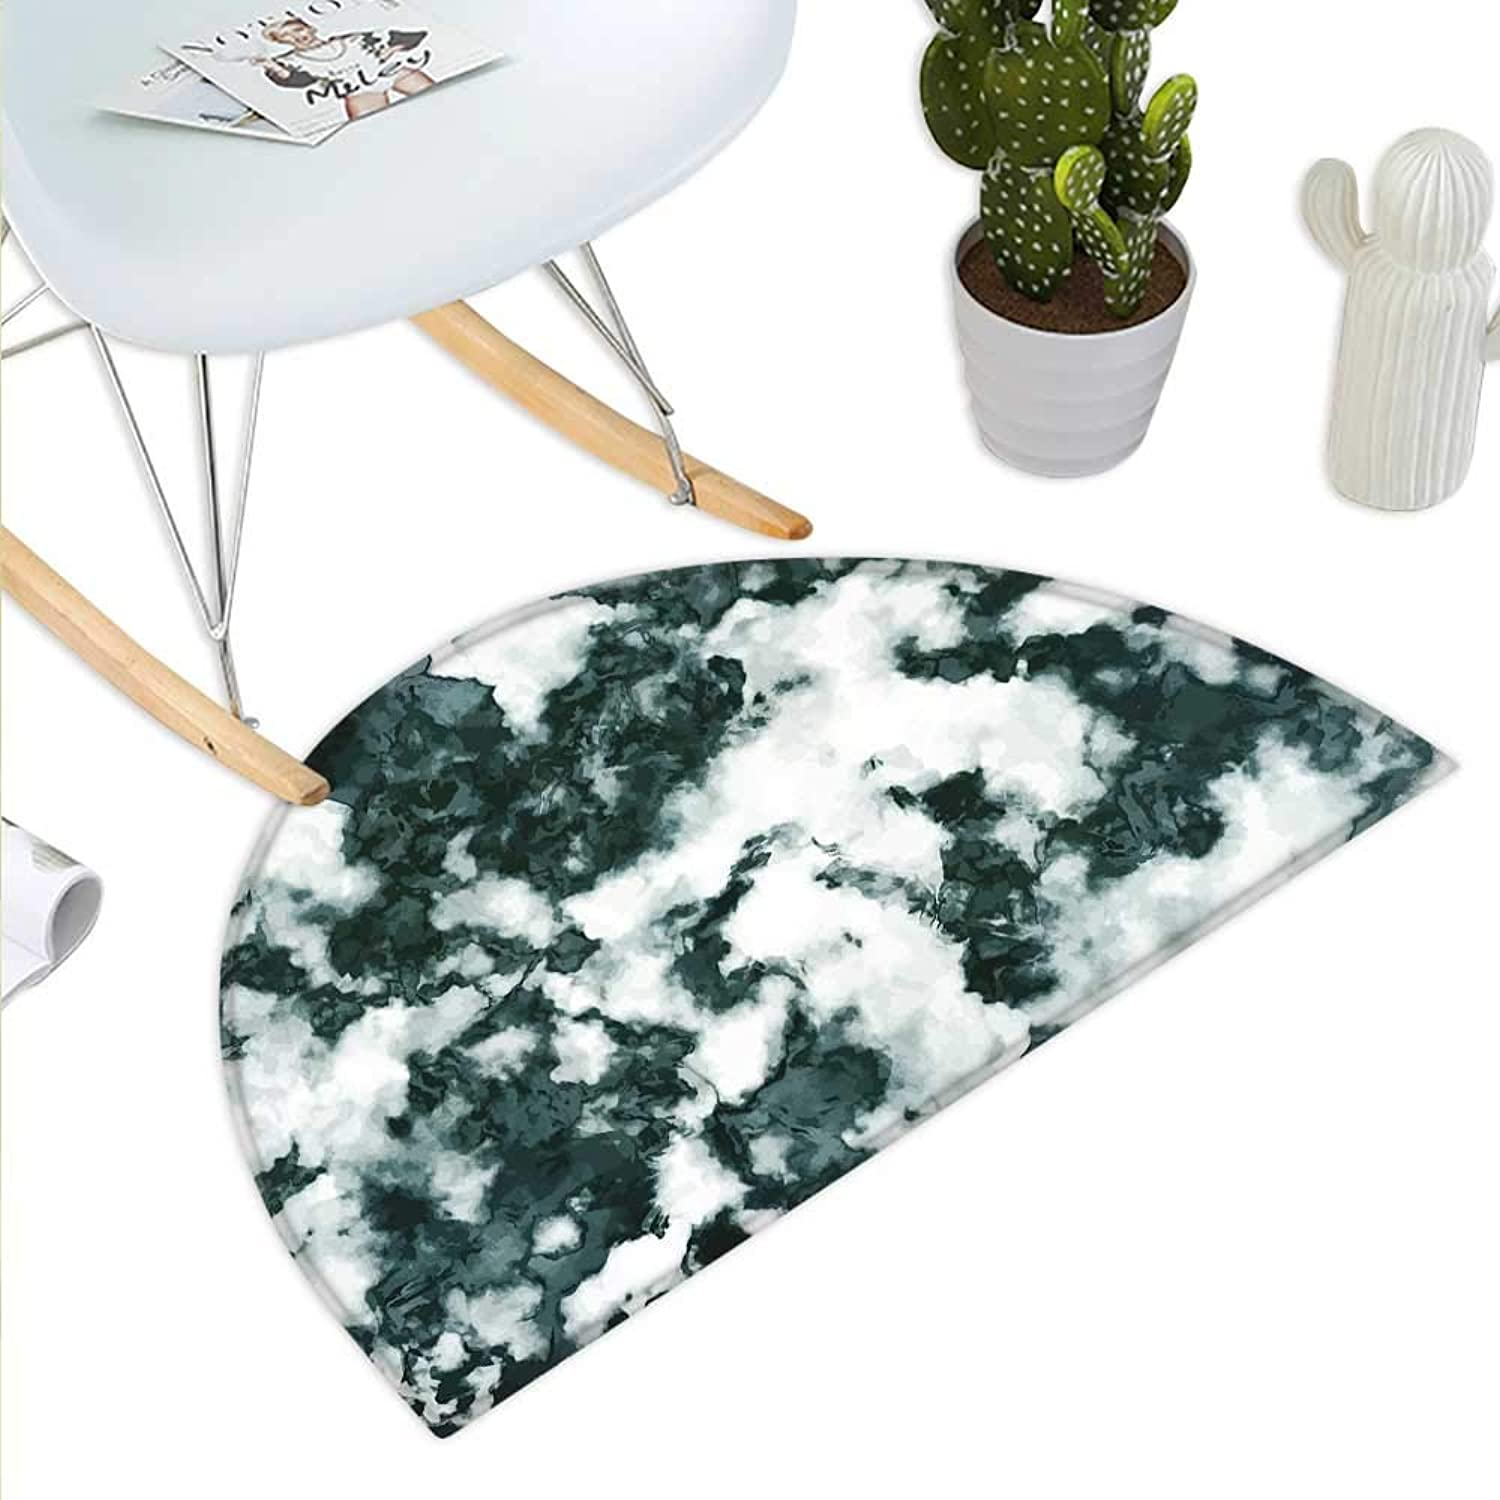 Marble Semicircle Doormat Abstract Stone Facet Artistic bluerry Layered Shades Textured Image Halfmoon doormats H 39.3  xD 59  Forest Green Pearl White